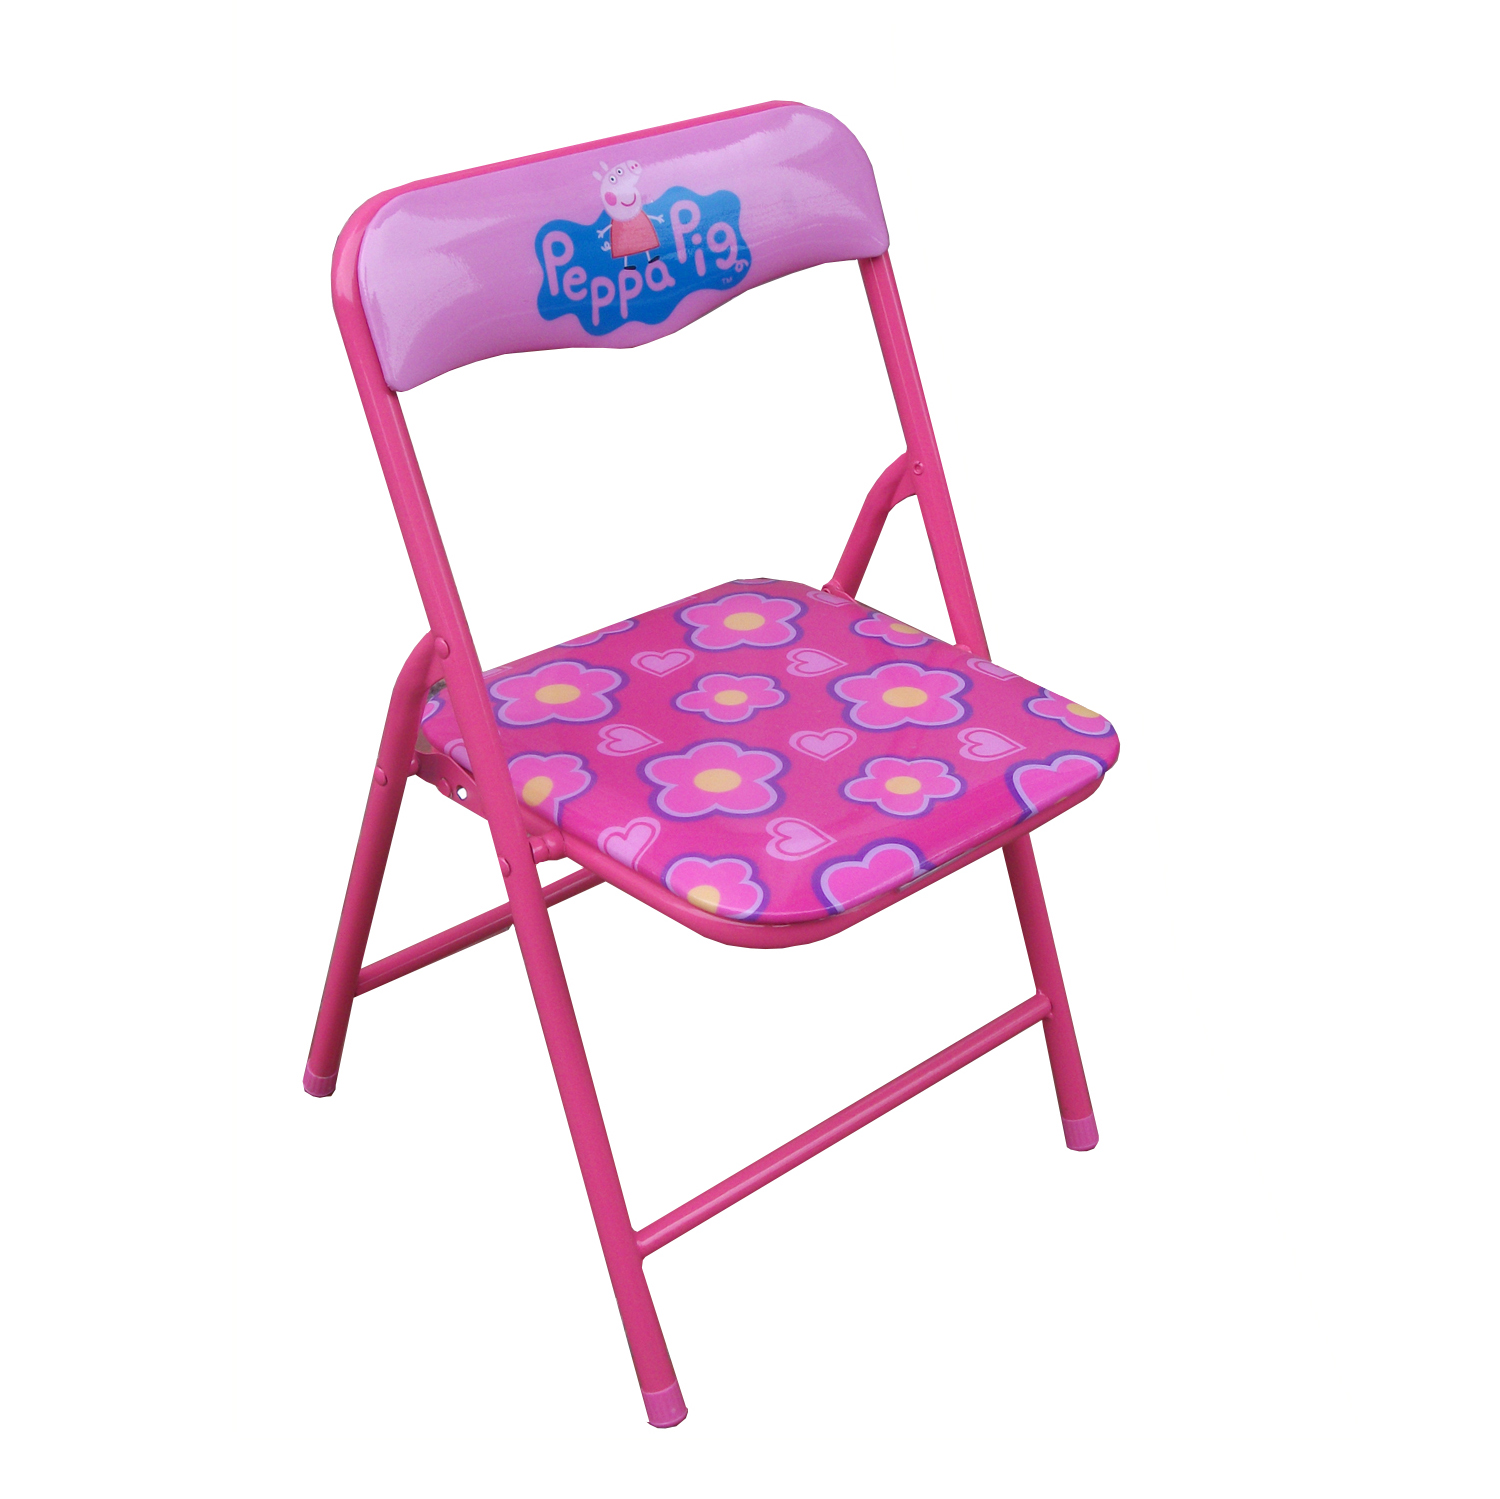 Peppa Pig Folding Chair, Pink